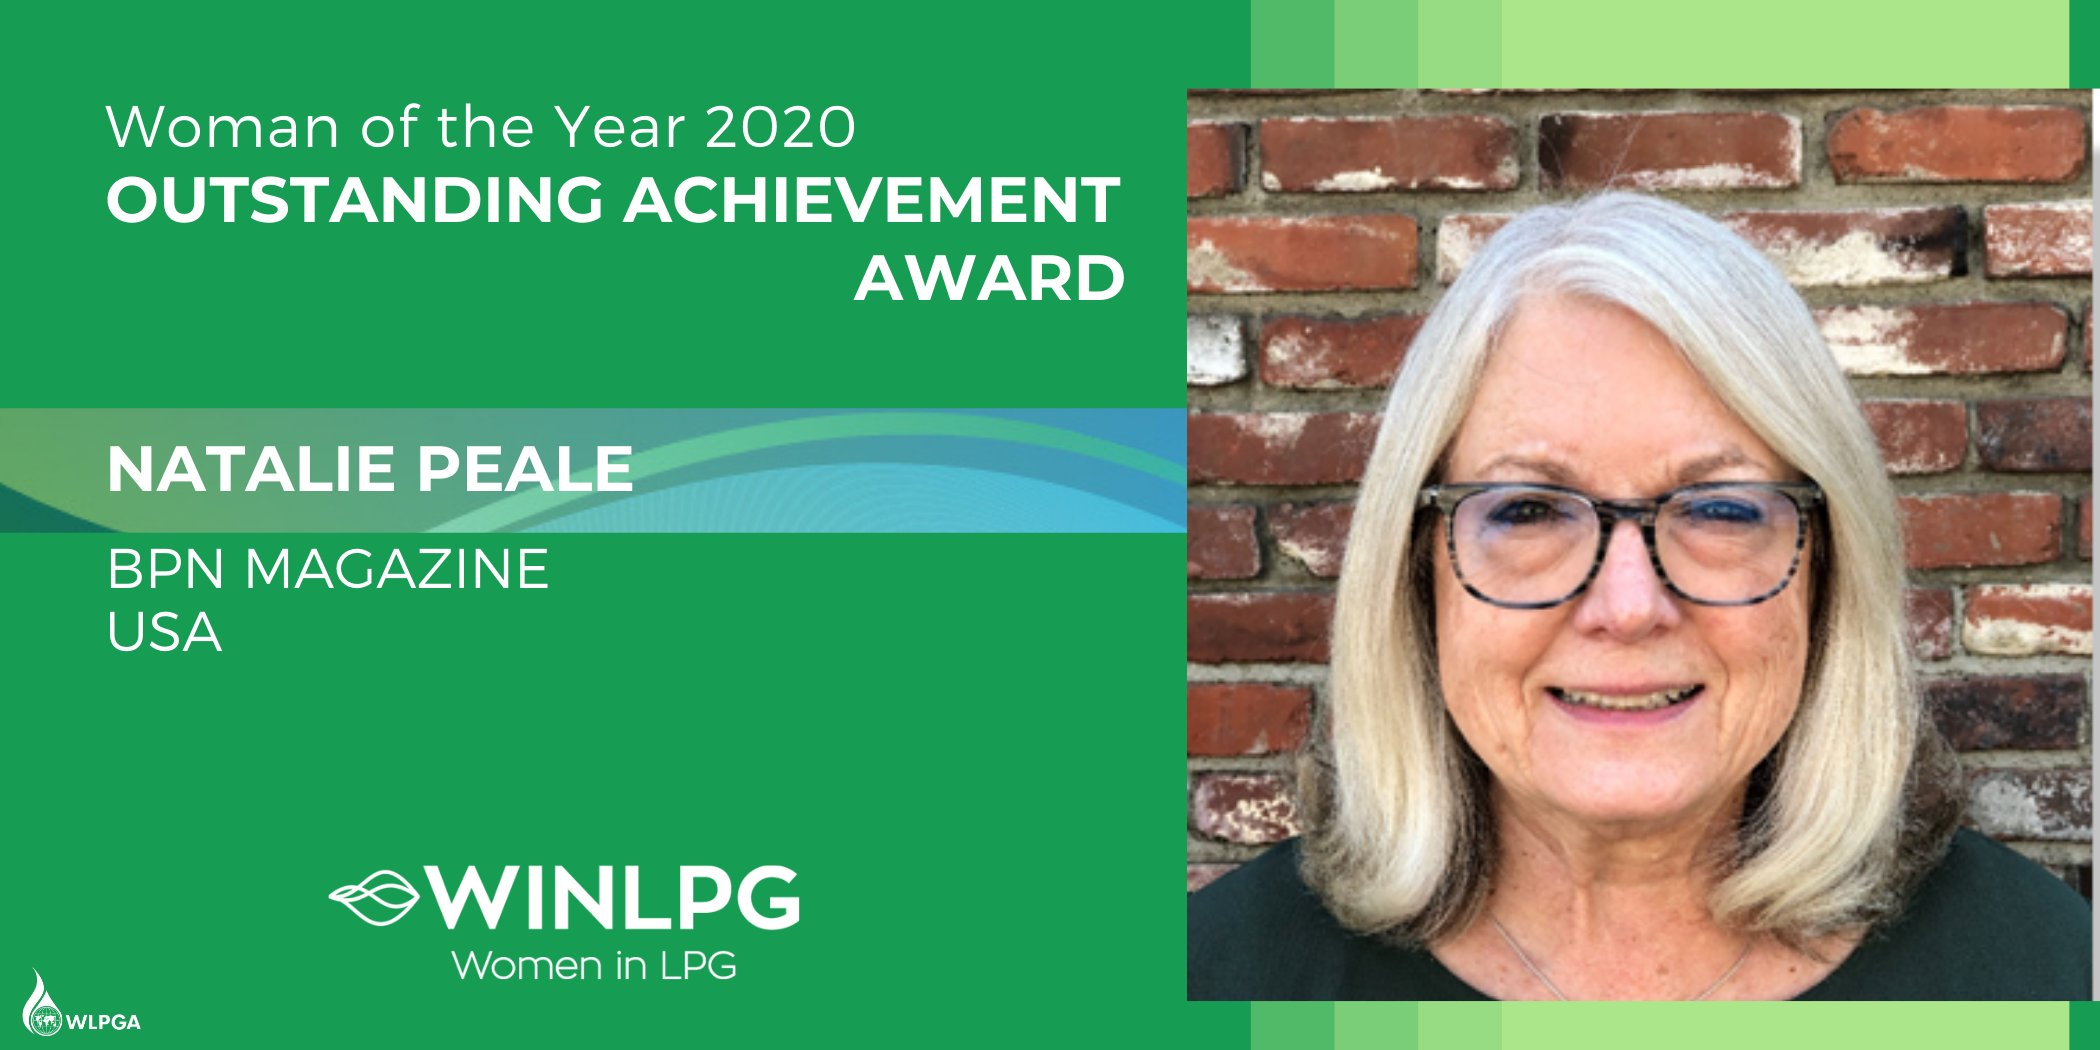 WLPGA Propane Woman of Year Award outstanding achievement goes to Bpn publisher Natalie Peal 2020